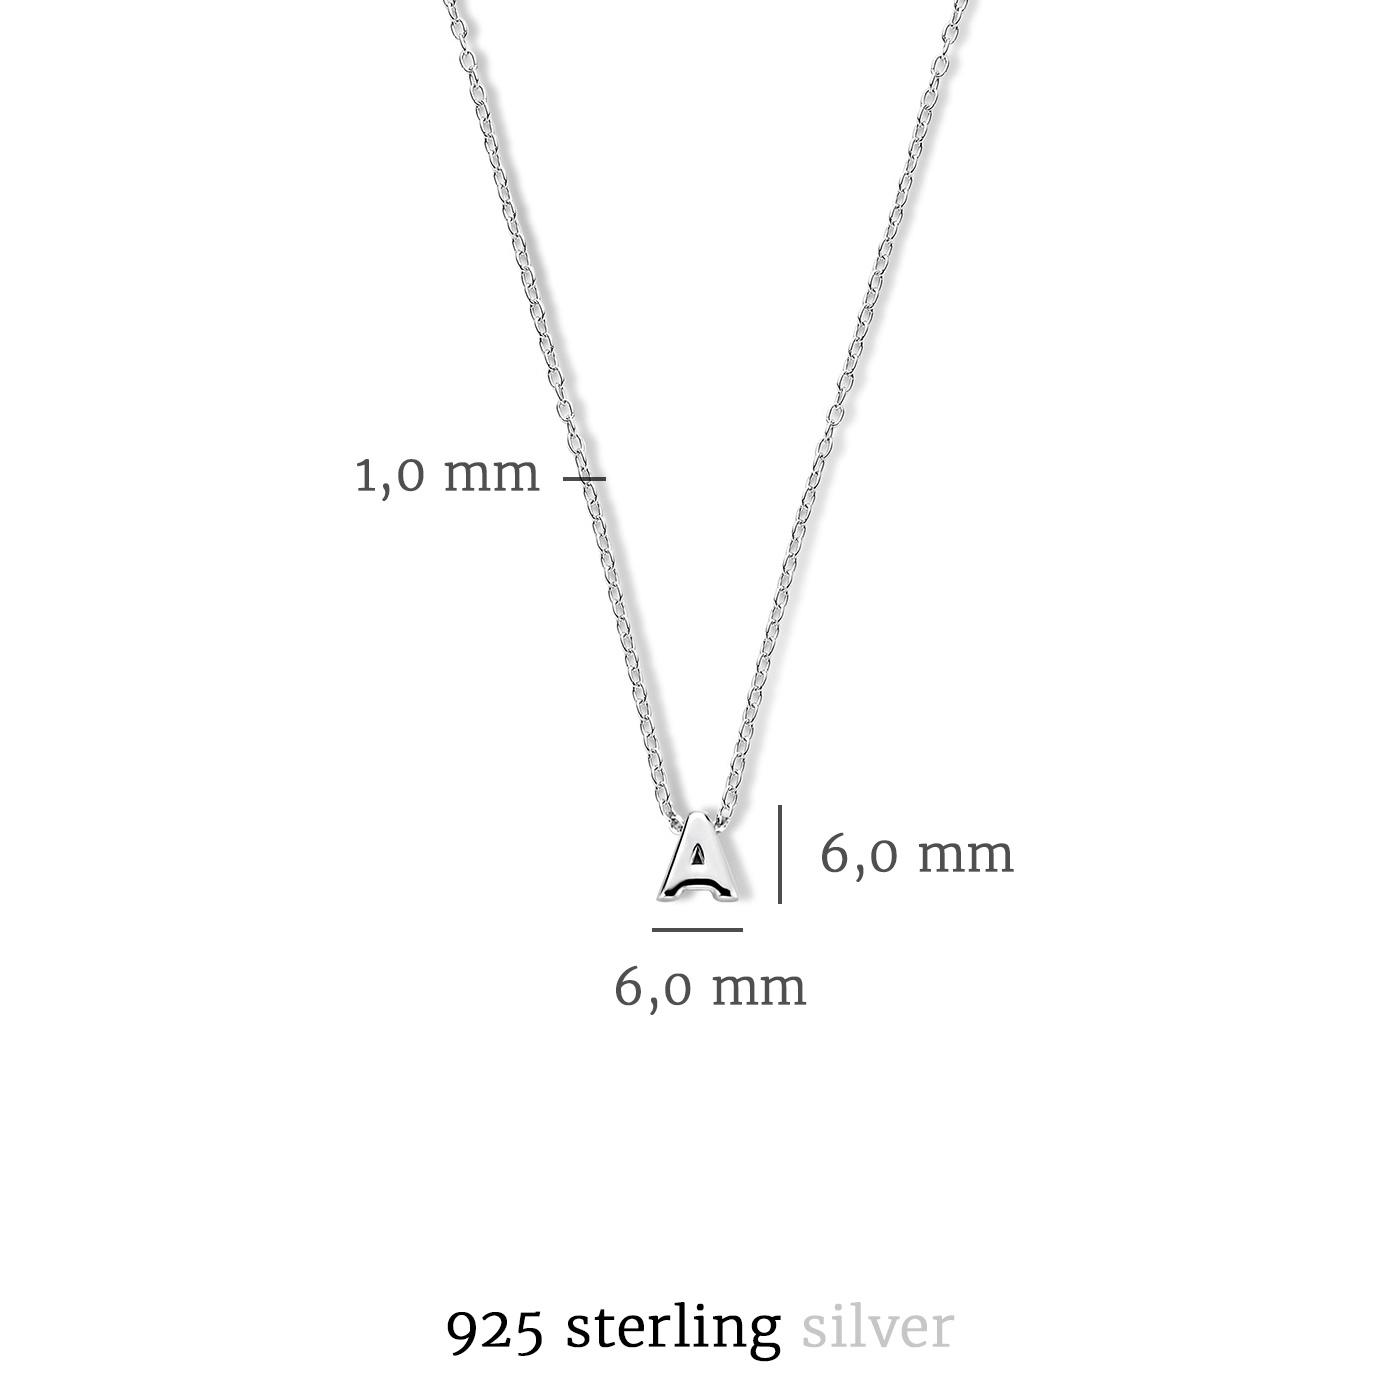 Selected Jewels Julie Chloé 925 sterling silver initial necklace with letter